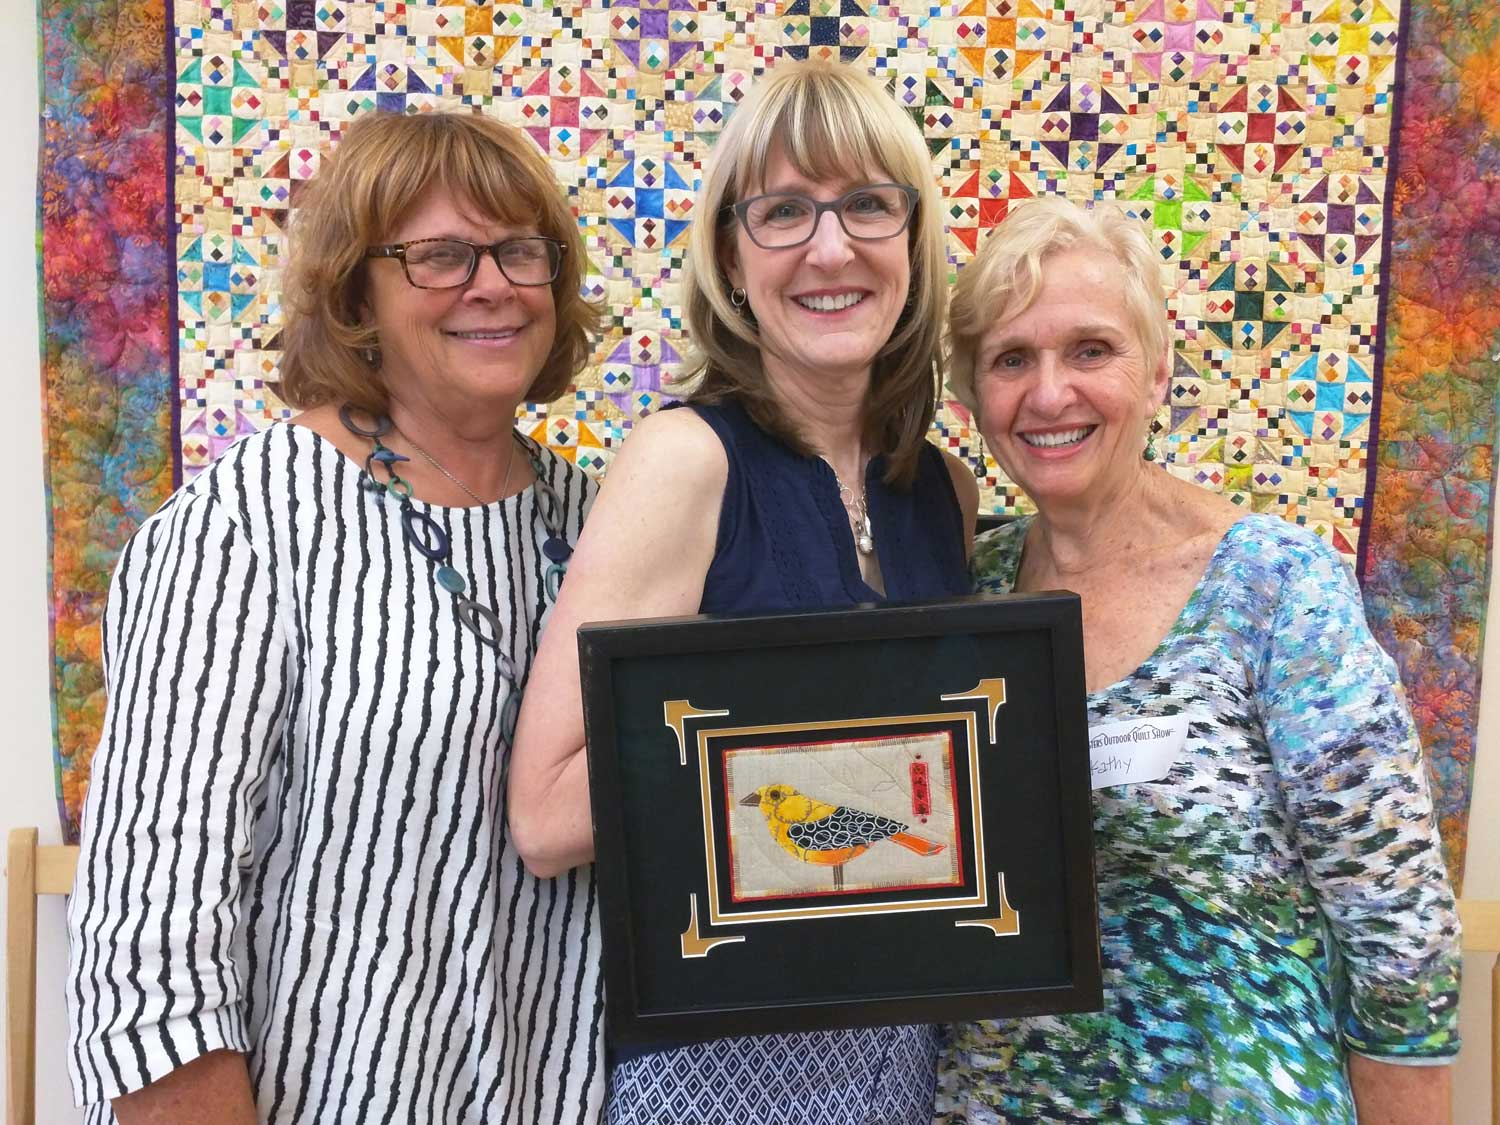 Ginny, Myrna and Kathy. Ginny and Kathy have been the co-chairs of the WUAC project the last two years and have done a fantastic job! Thanks to the both of you!